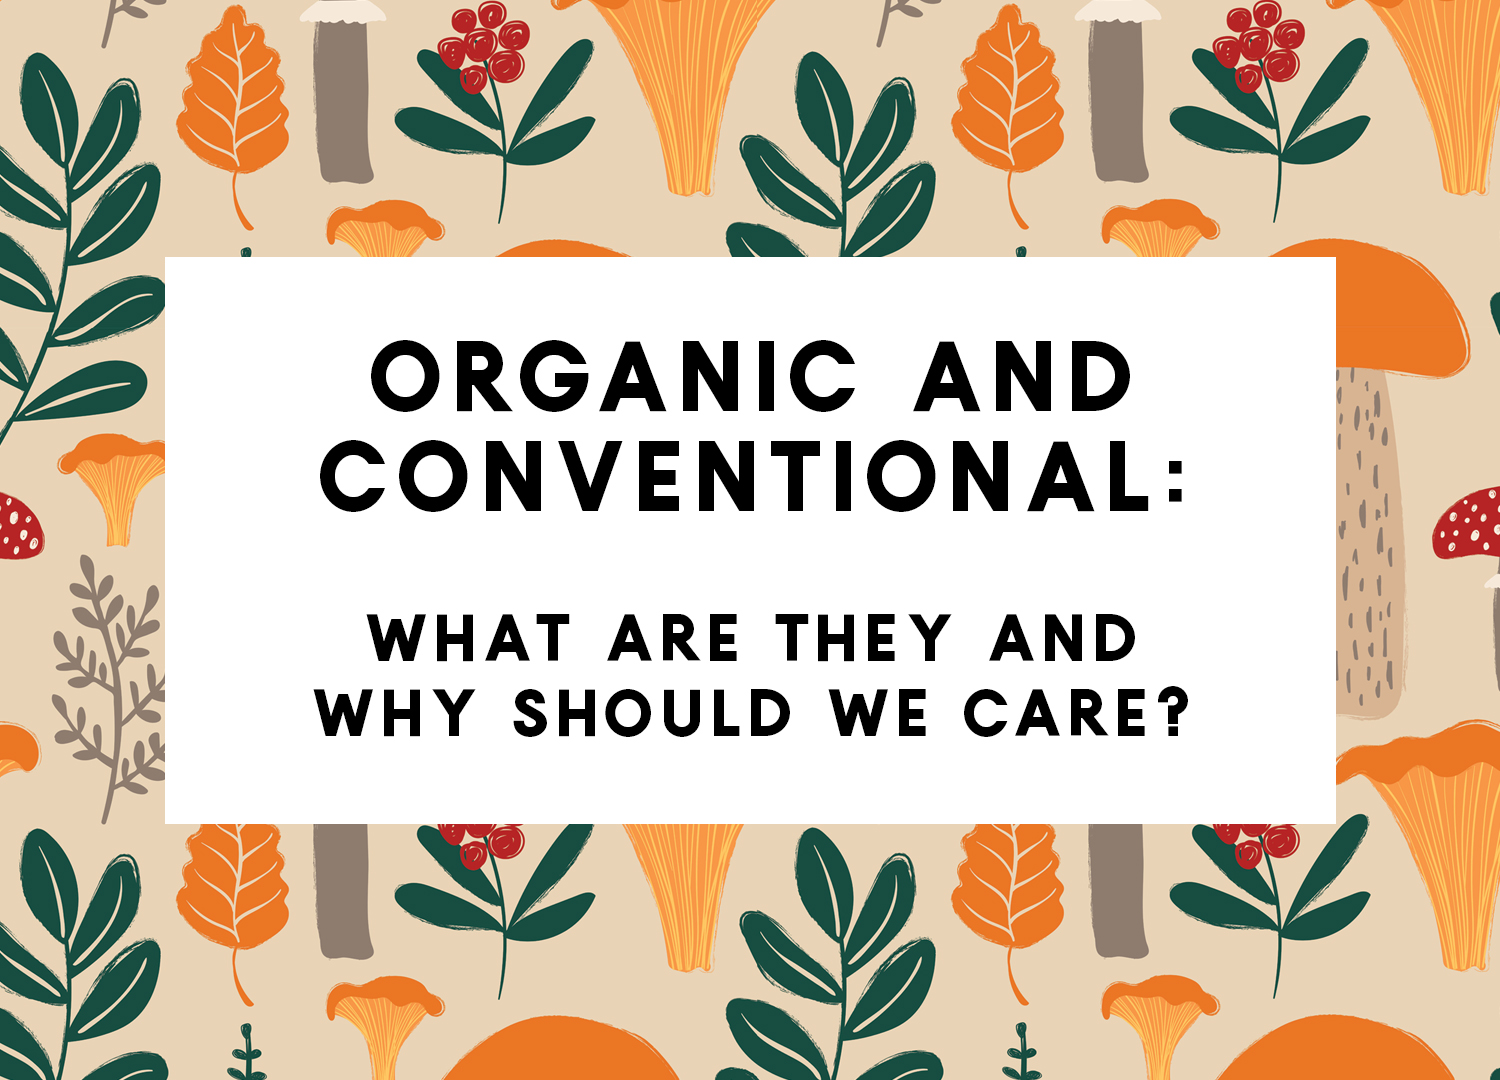 Organic and Conventional - Facebook.jpg